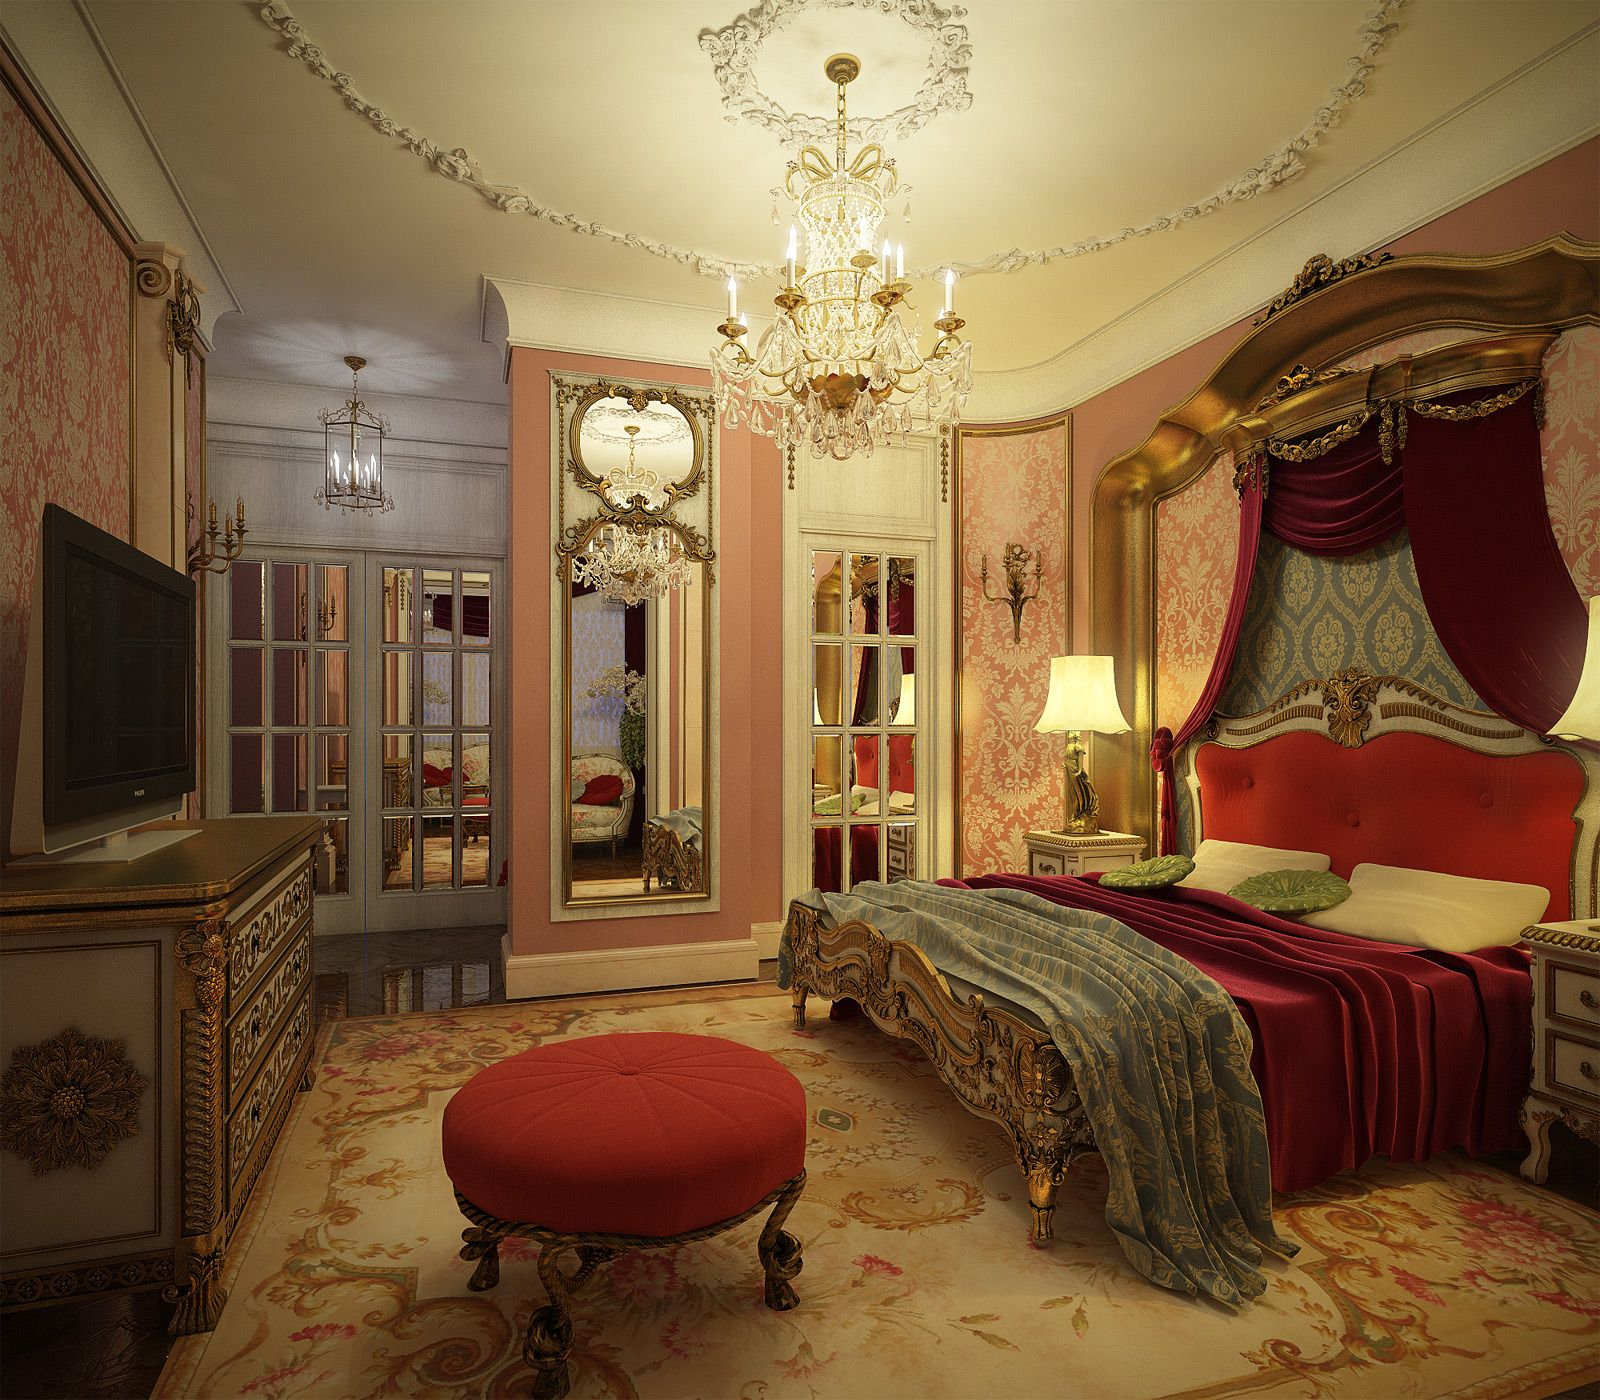 French Bedroom Design Ideas: The Most Amazing Bedroom I Have Ever Seen! Opulent Bedroom